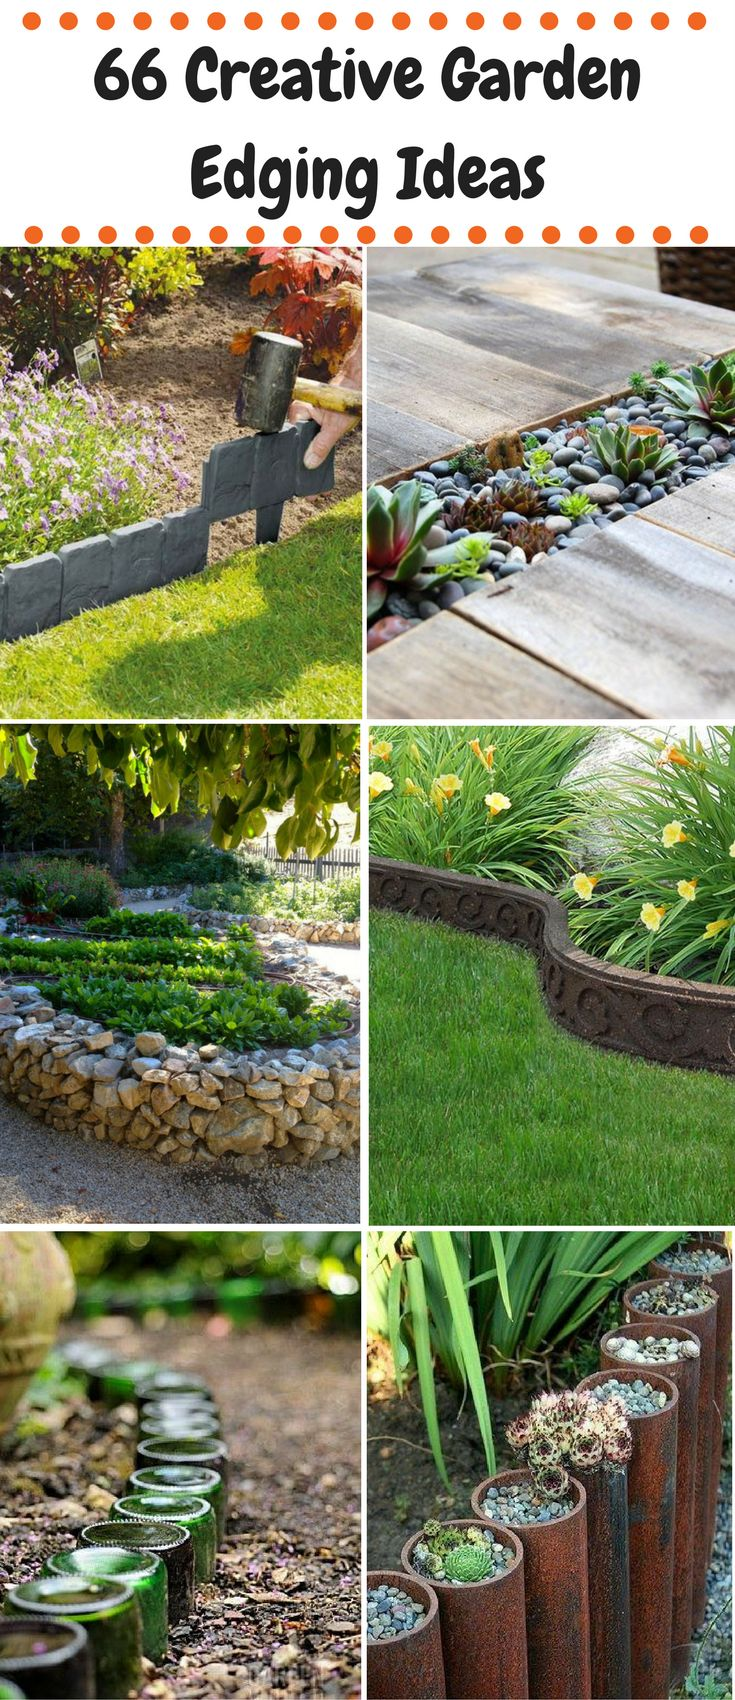 Creative Garden Edging Ideas garden bed edging ideas woohome 8 2 66 Creative Garden Edging Ideas